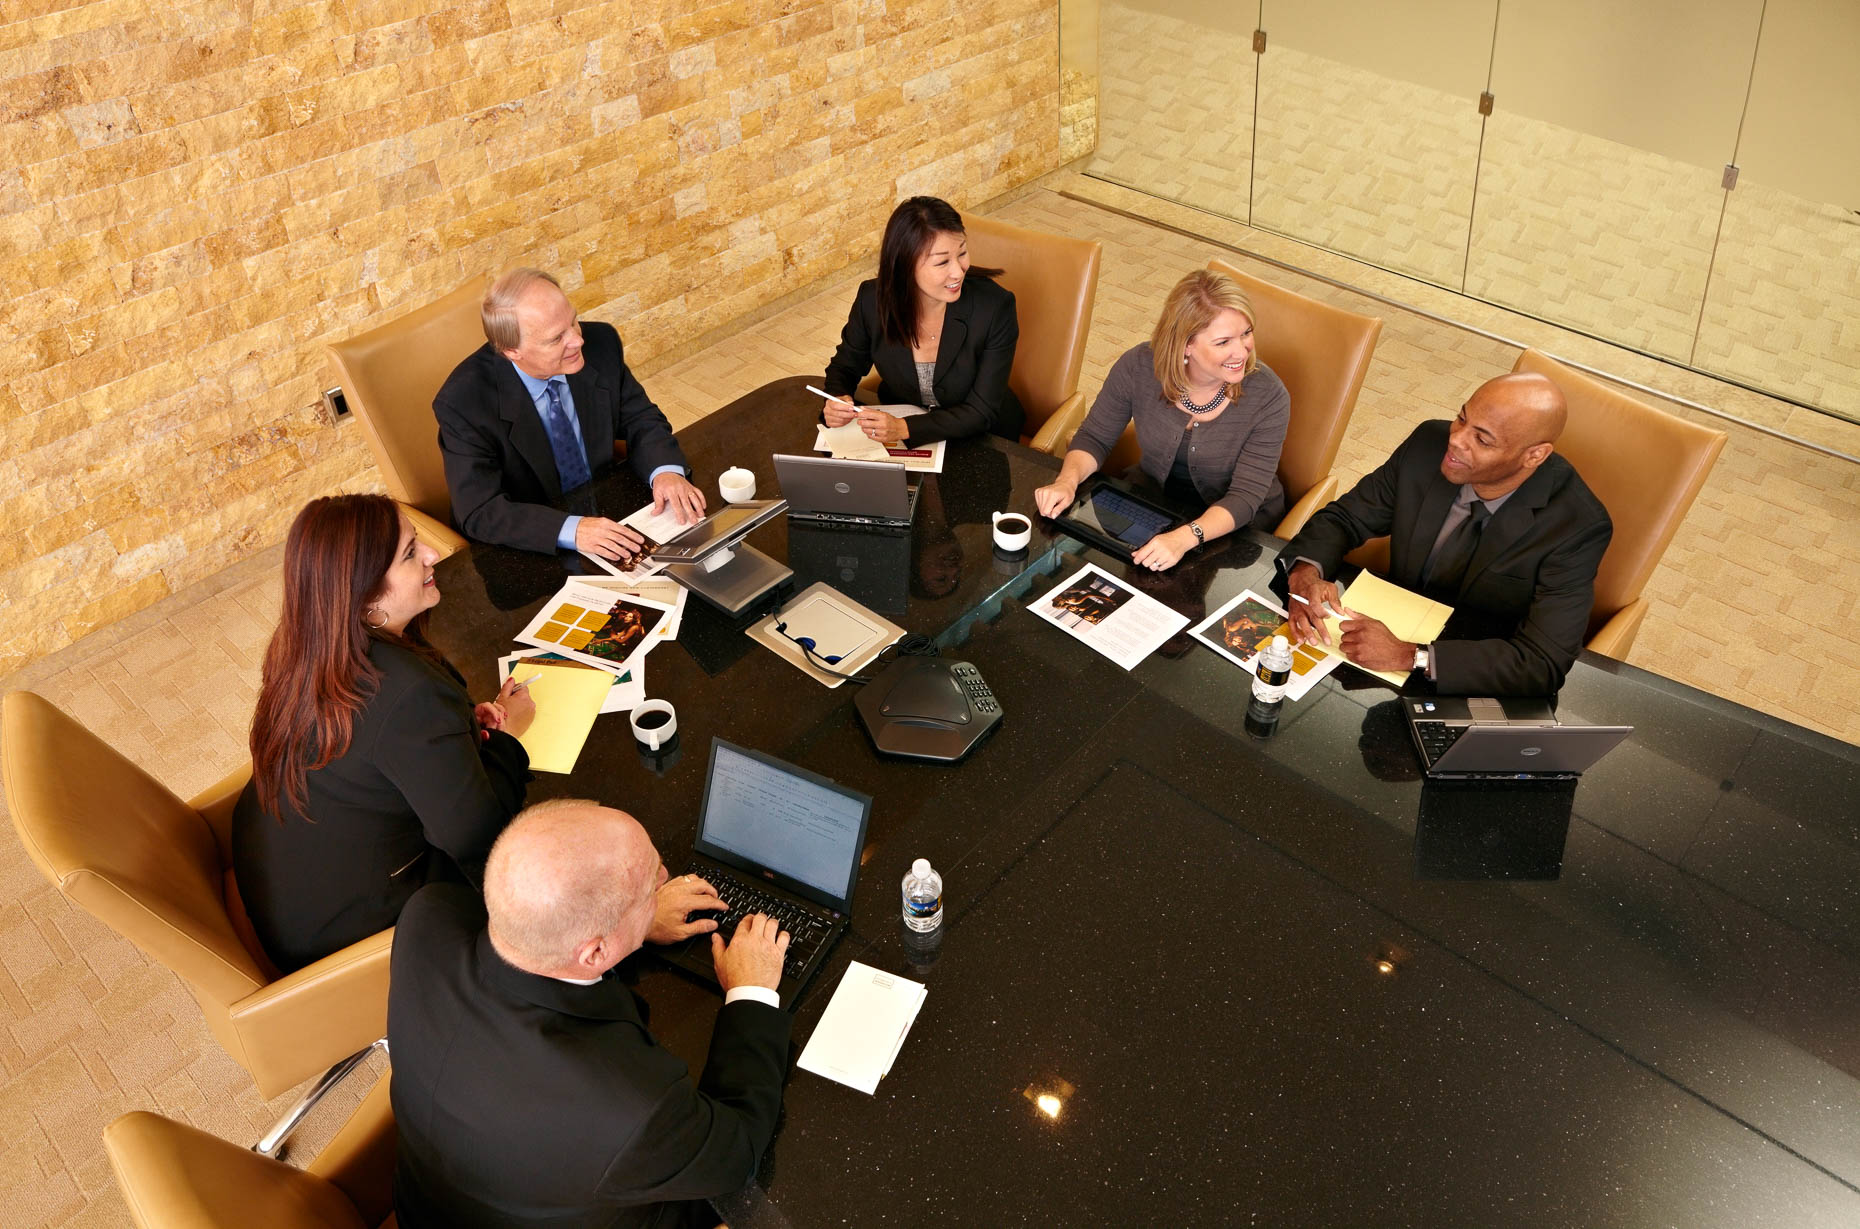 Overhead photograph of people in office meeting in corporate conference room.